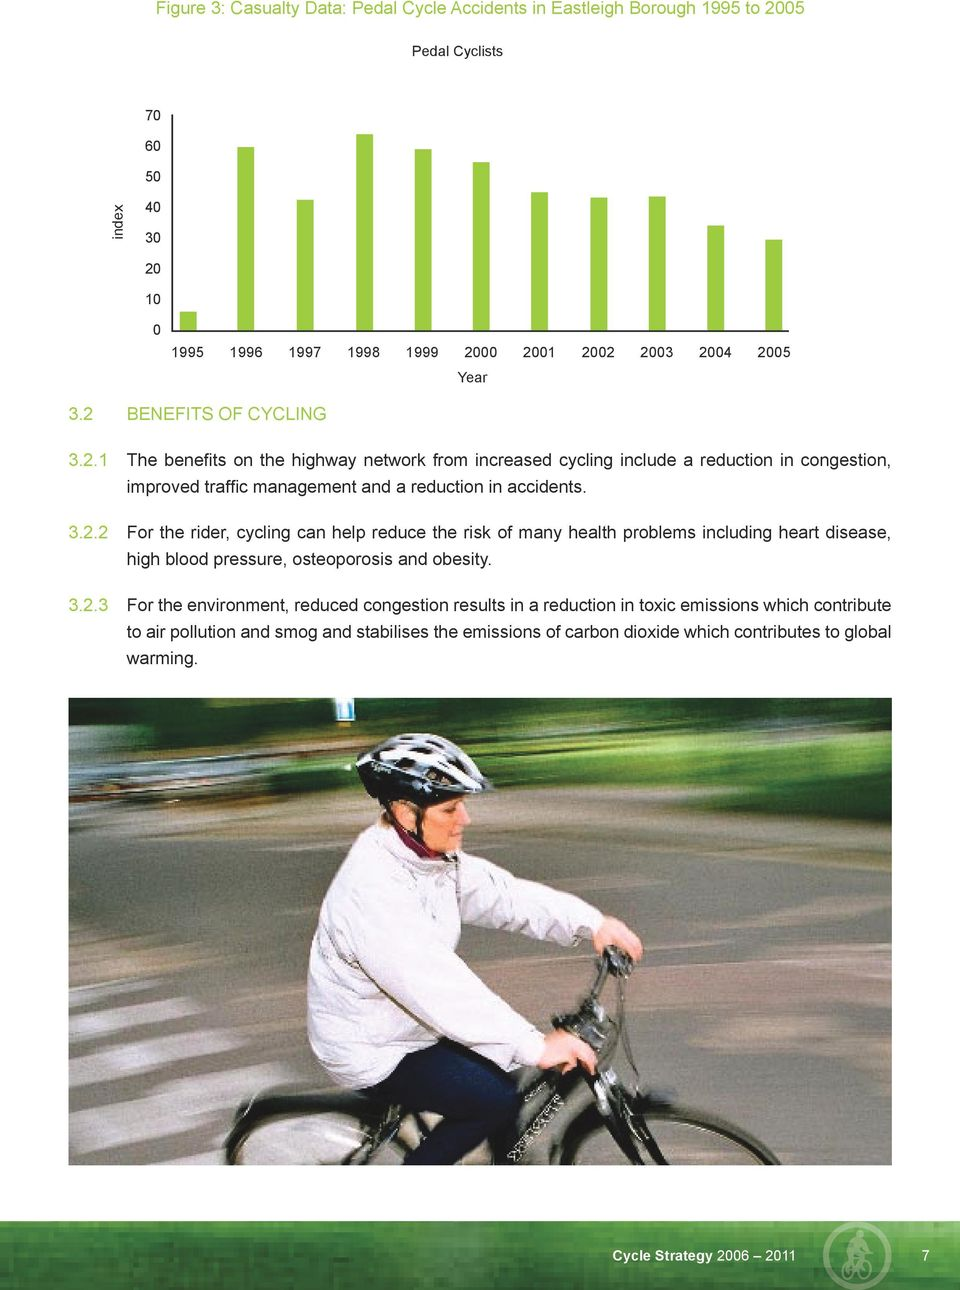 05) 3.2 BENEFITS OF CYCLING 3.2.1 The benefits on the highway network from increased cycling include a reduction in congestion, improved traffic management and a reduction in accidents. 3.2.2 For the rider, cycling can help reduce the risk of many health problems including heart disease, high blood pressure, osteoporosis and obesity.